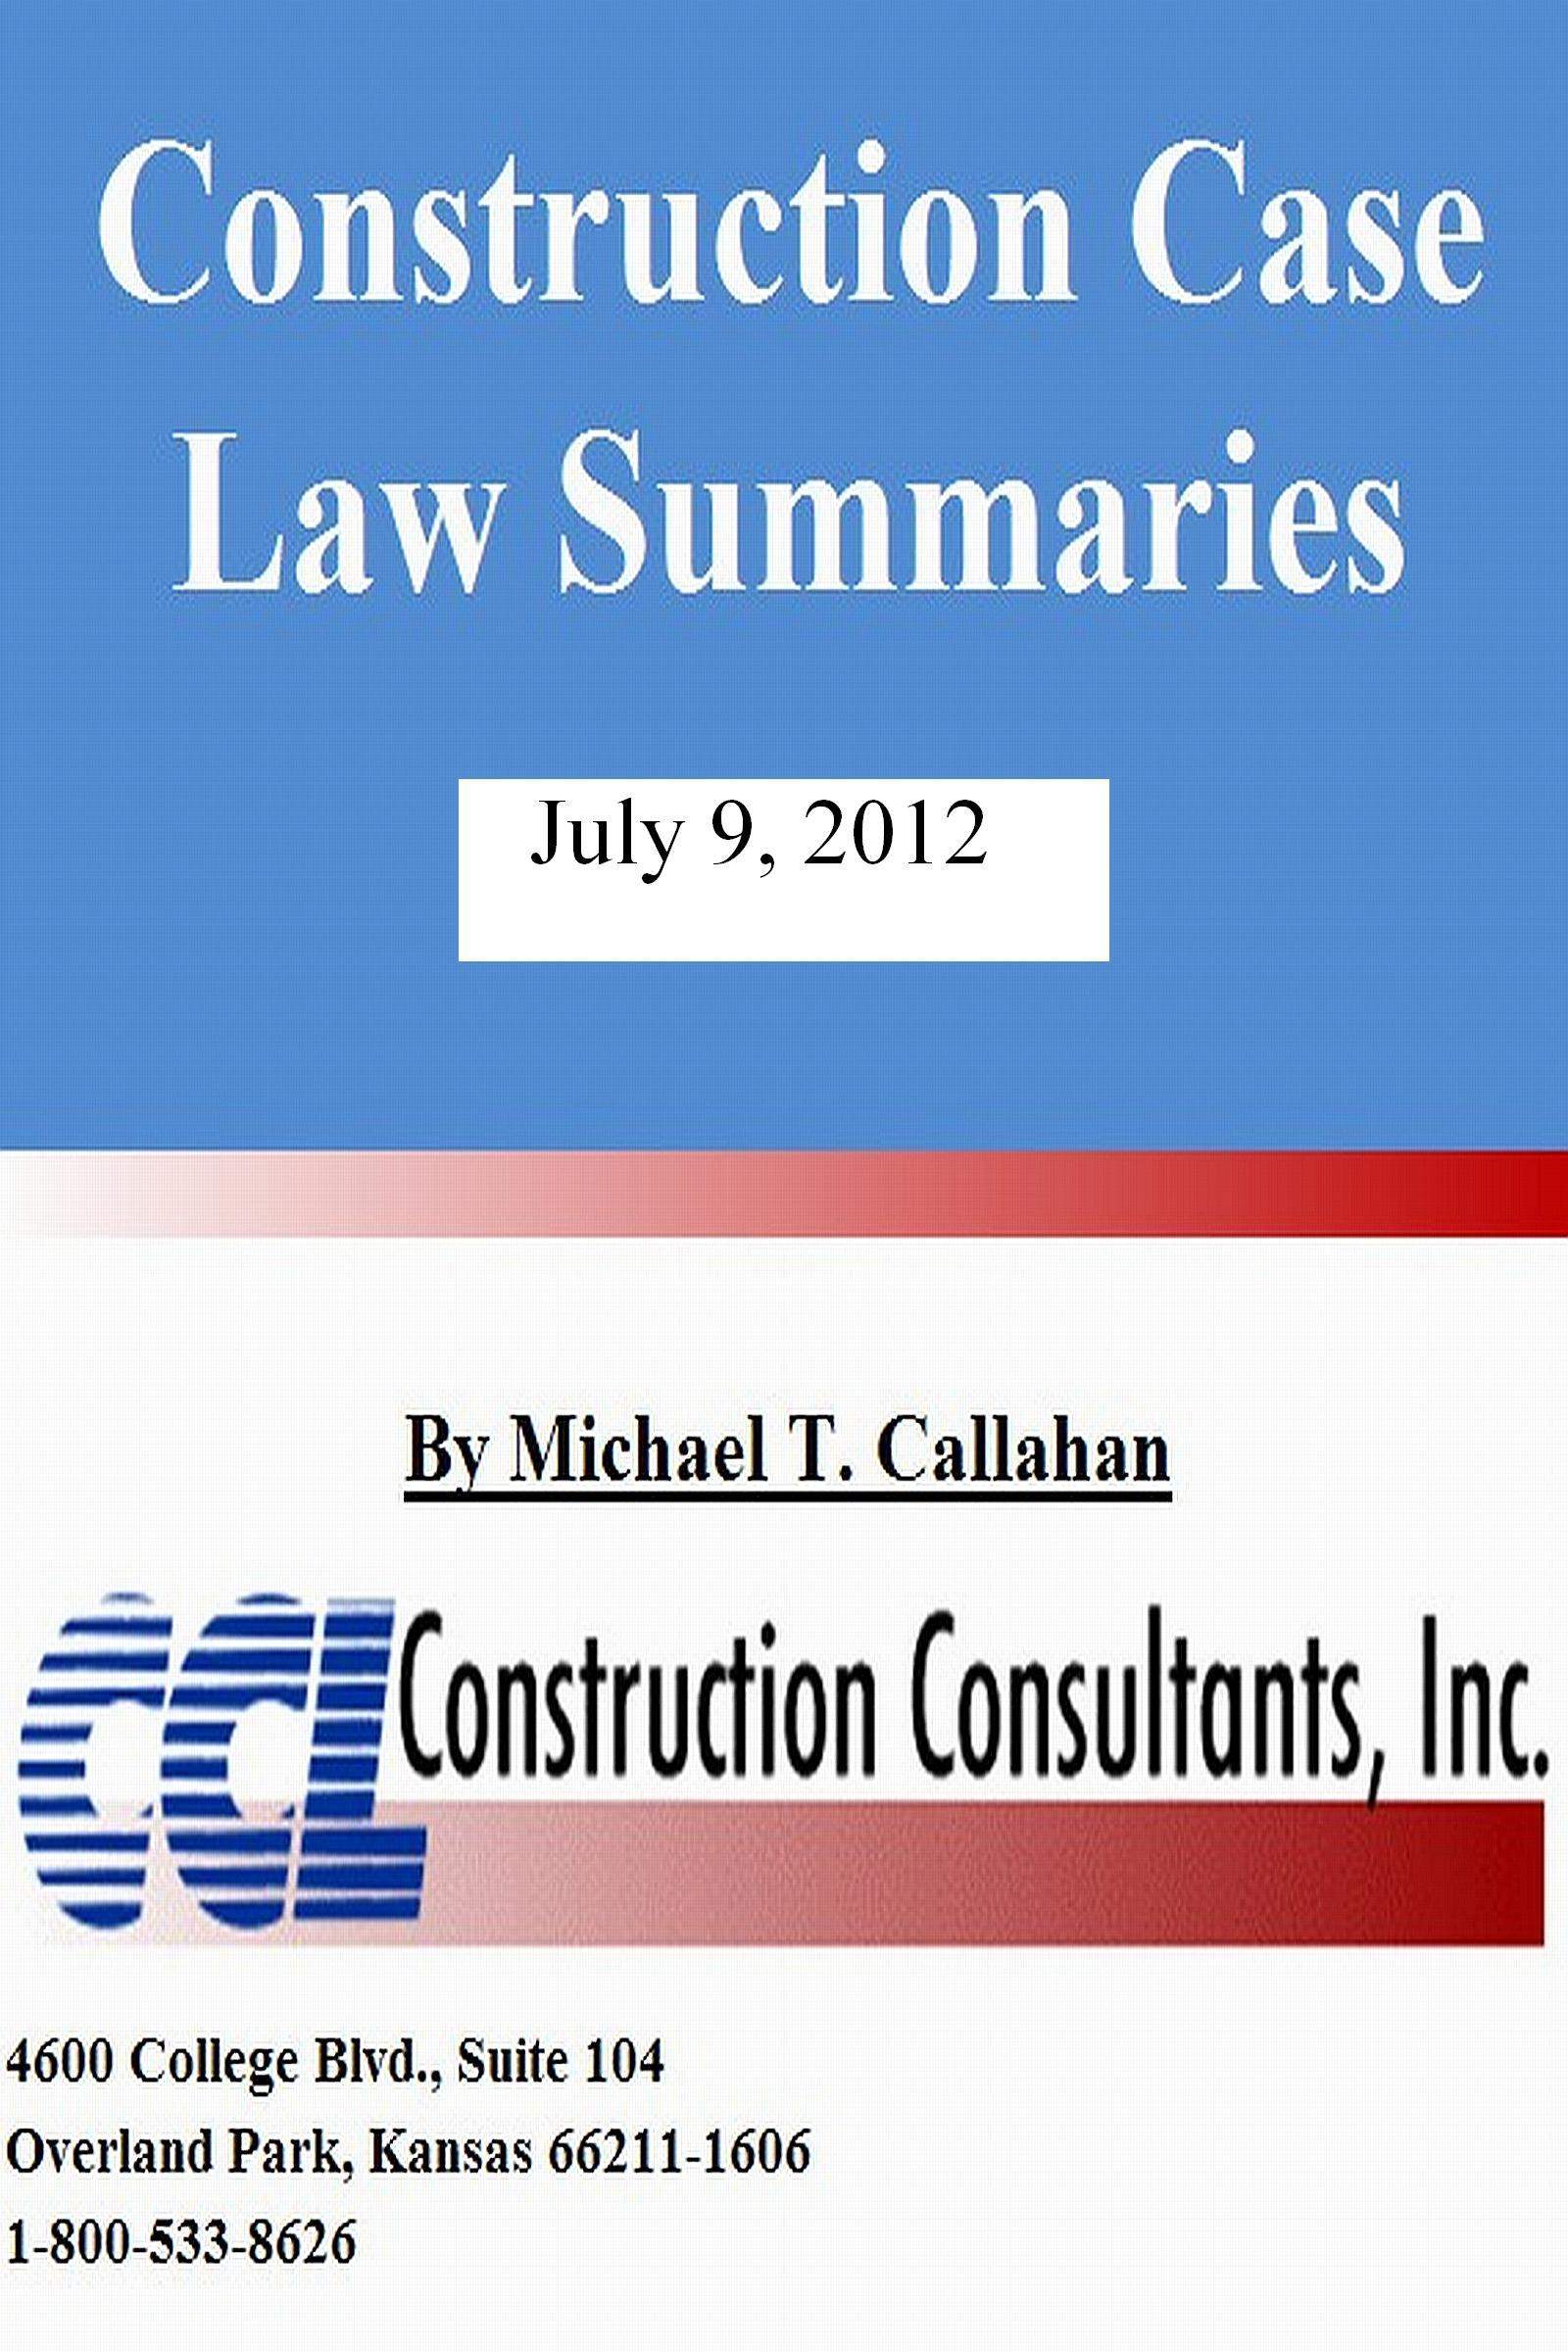 Construction Case Law Summaries: July 9, 2012